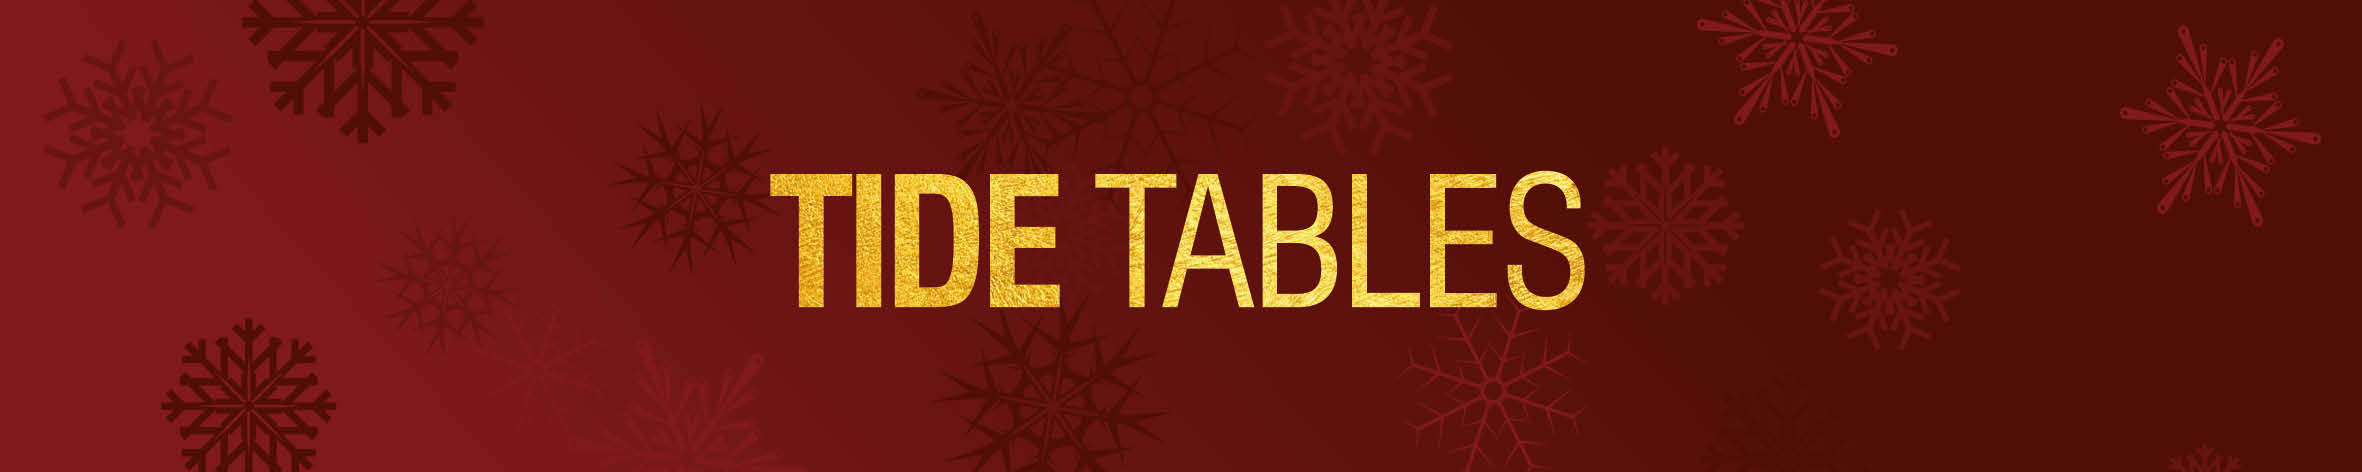 Christmas Tide Tables Banner 19